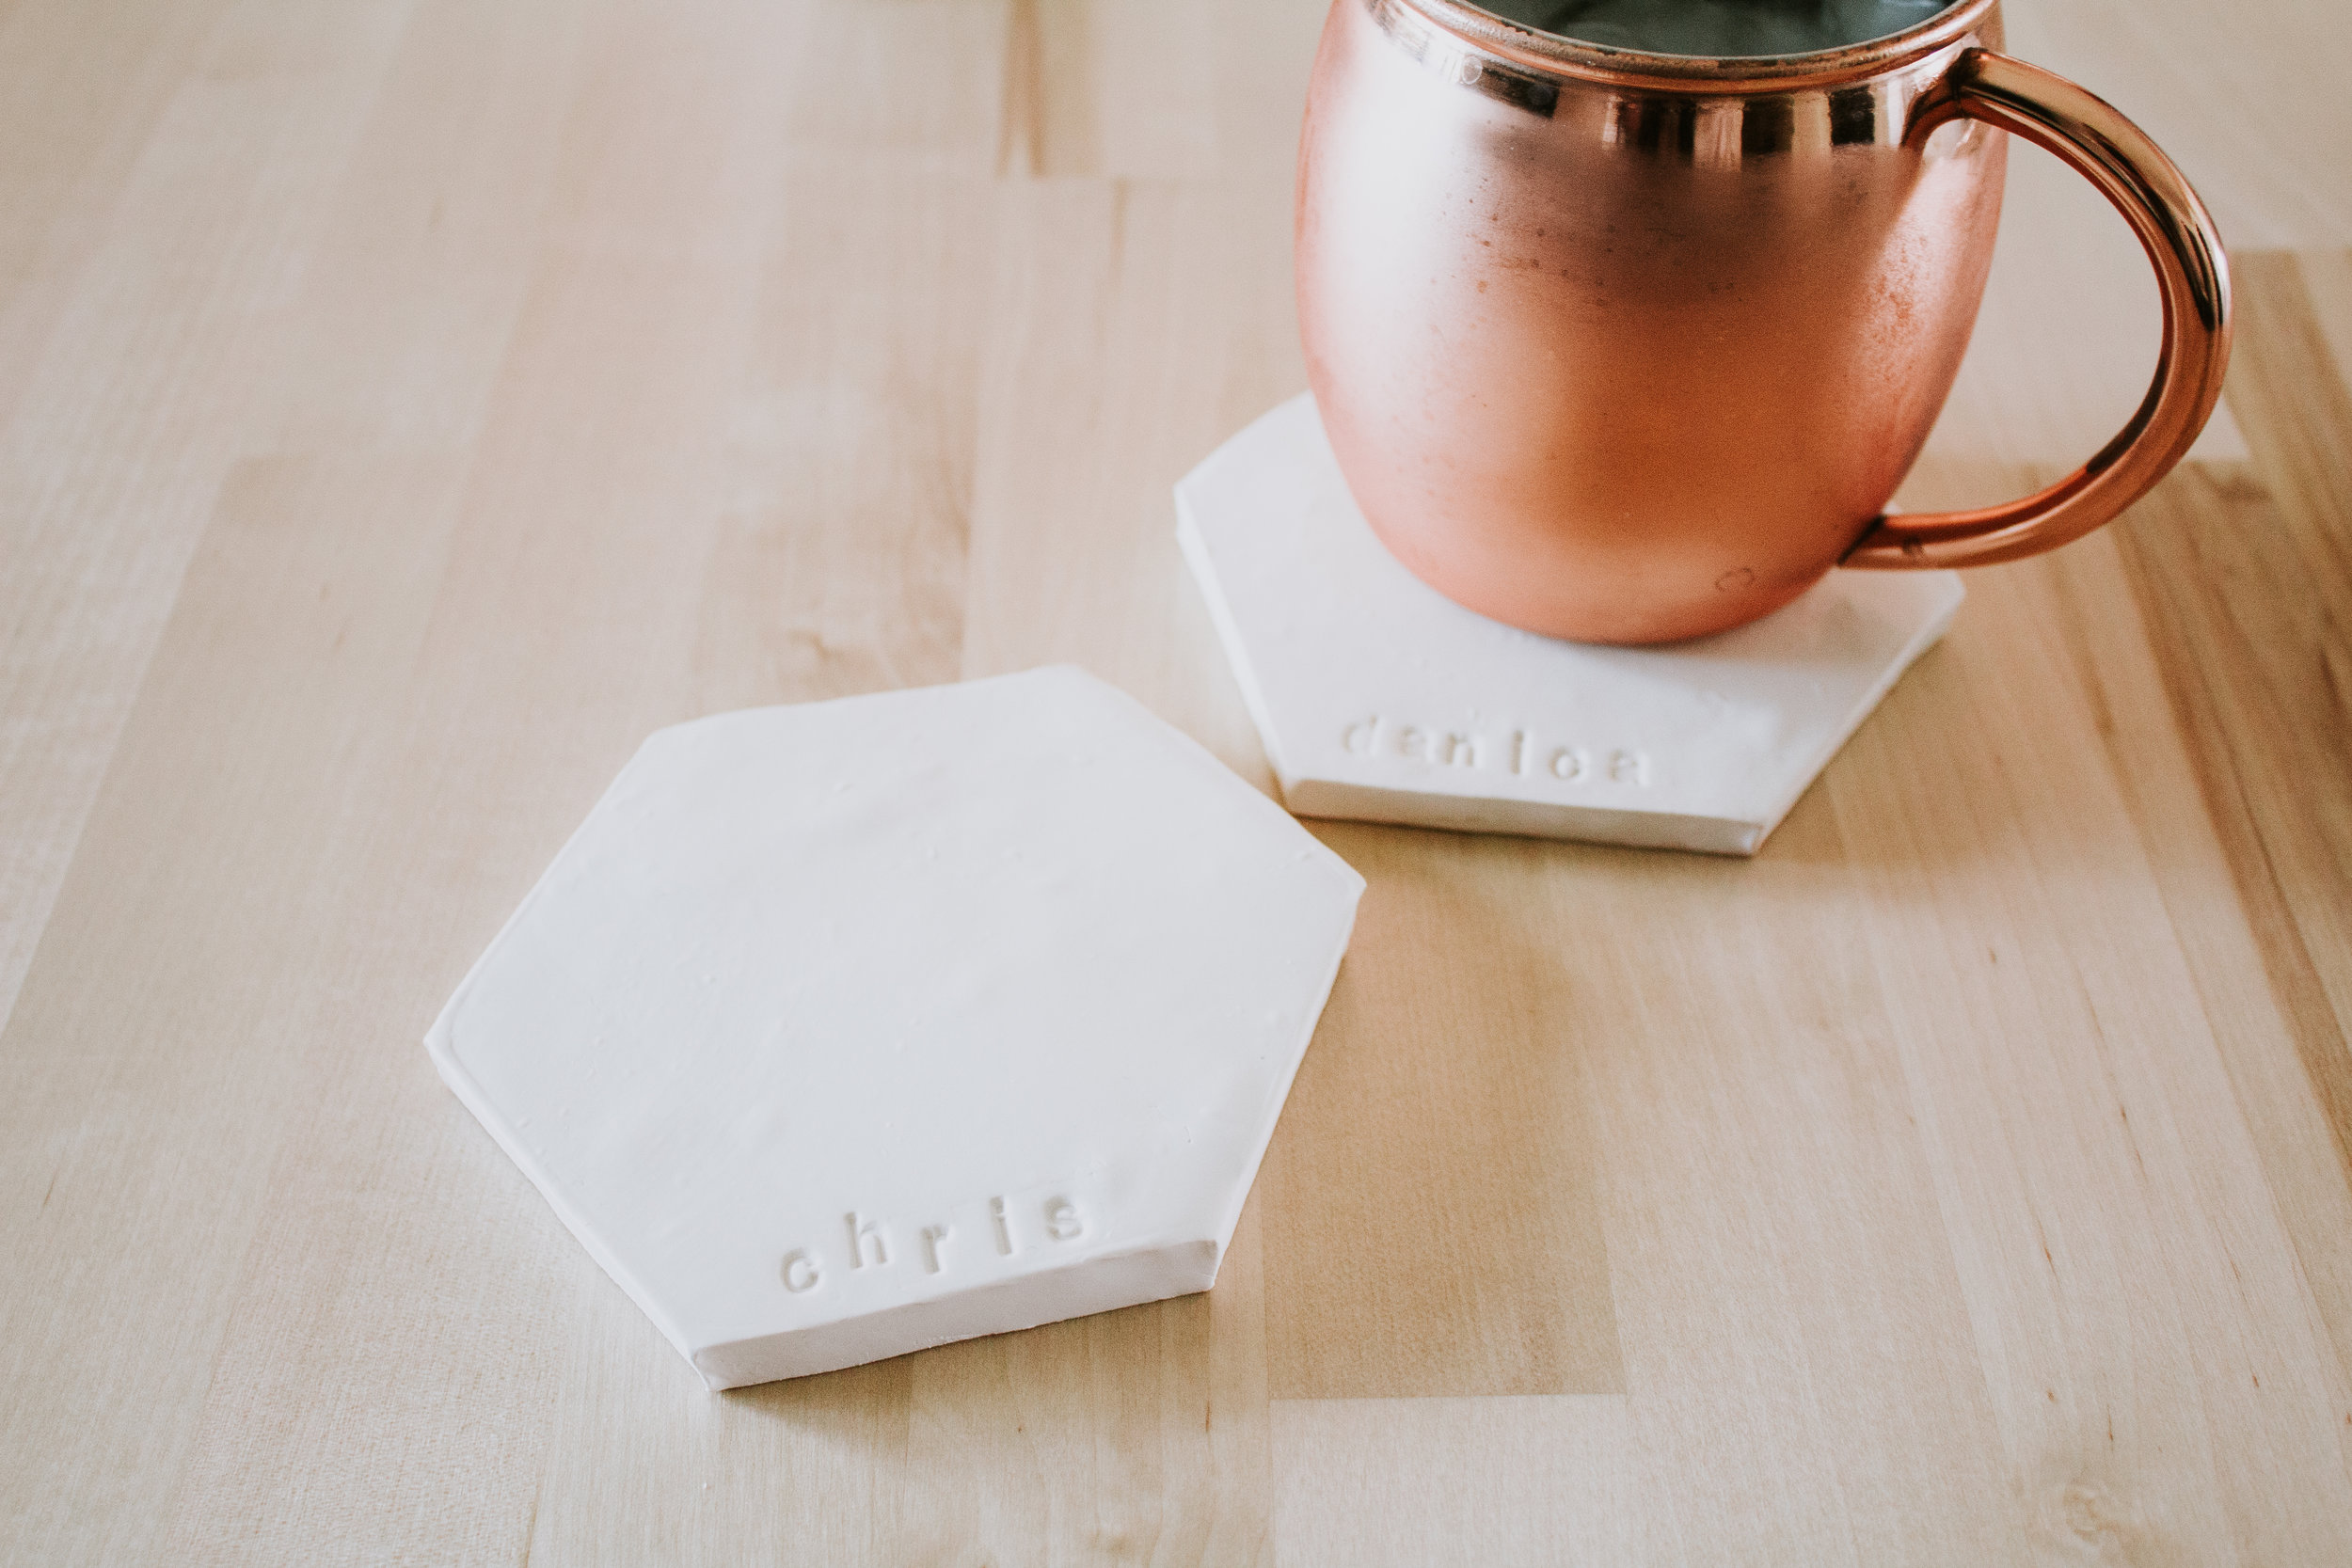 3 DIY Christmas presents they'll love - Make your own custom hexagon clay coasters - stamp your name or word - Easy DIY gift